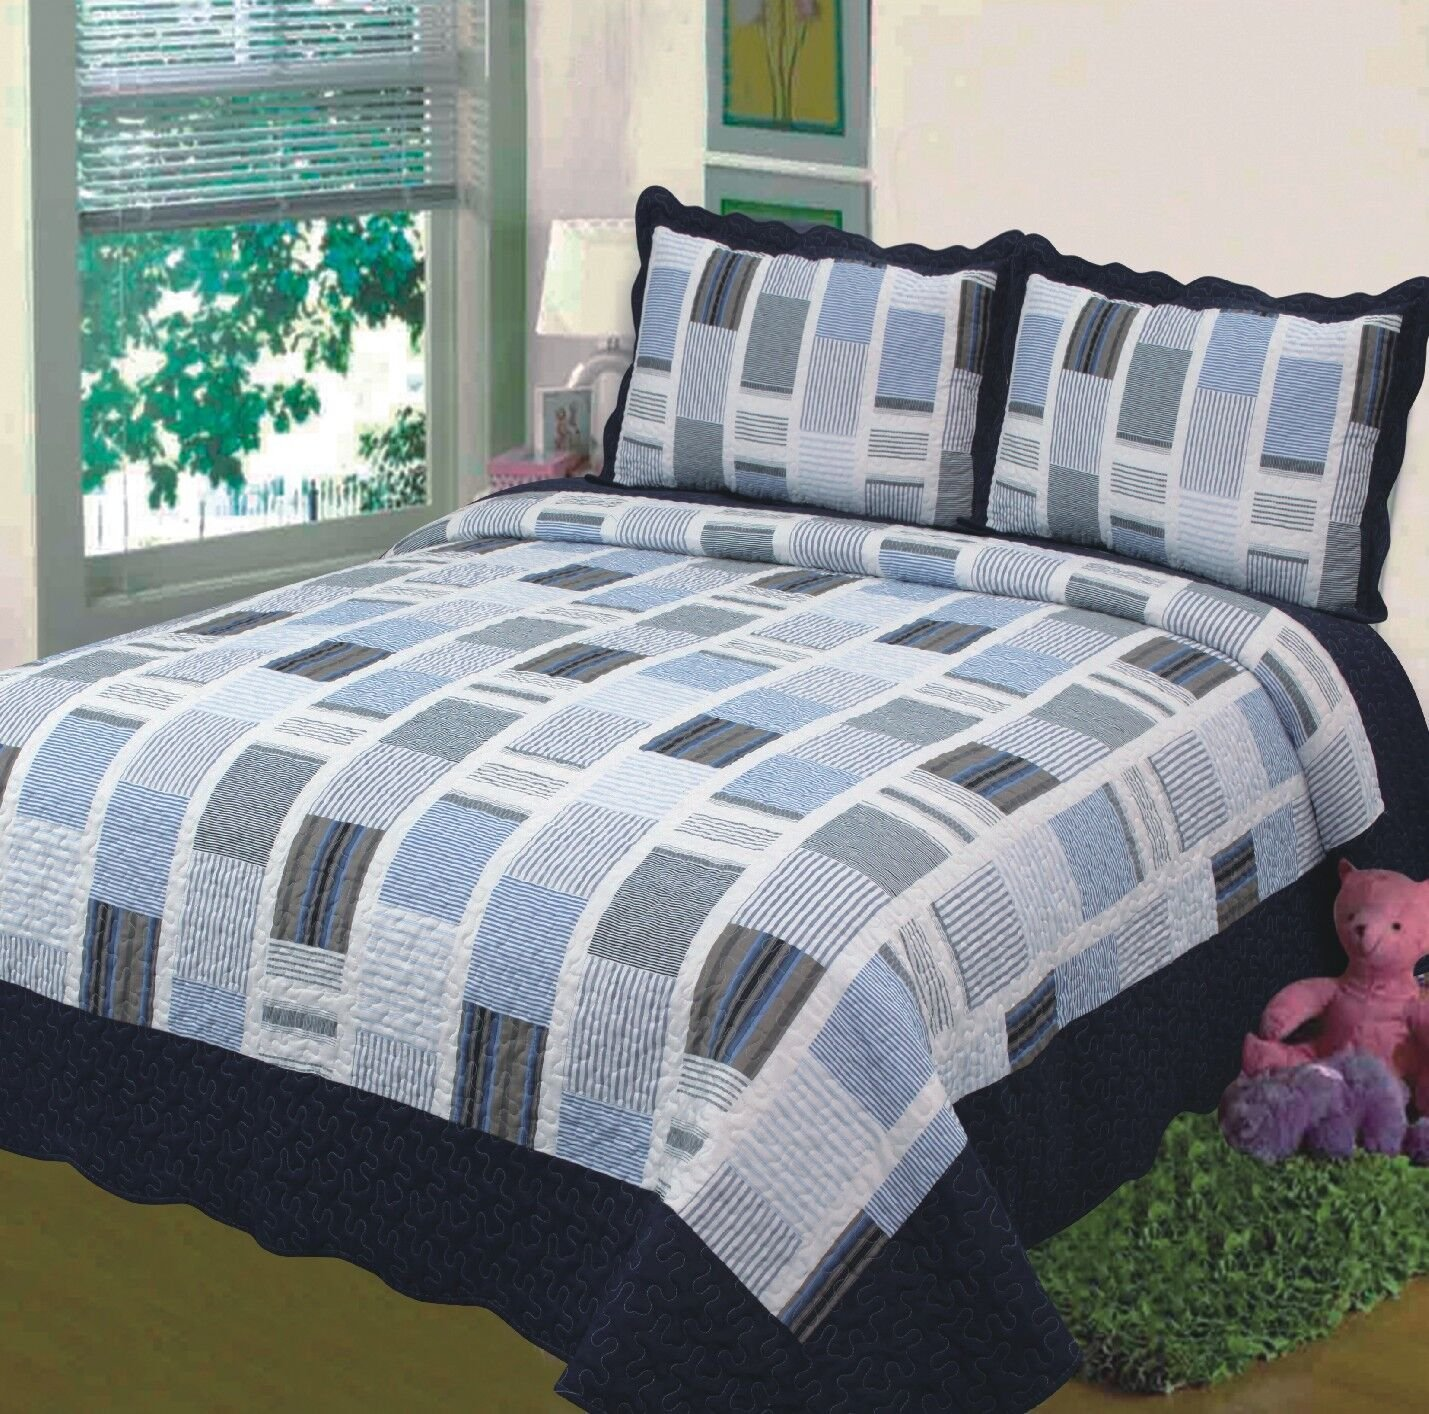 Fancy Collection 3pc Bedspread Bed Cover White Navy Squares Full//Queen Over size 100x106 COMIN18JU054426